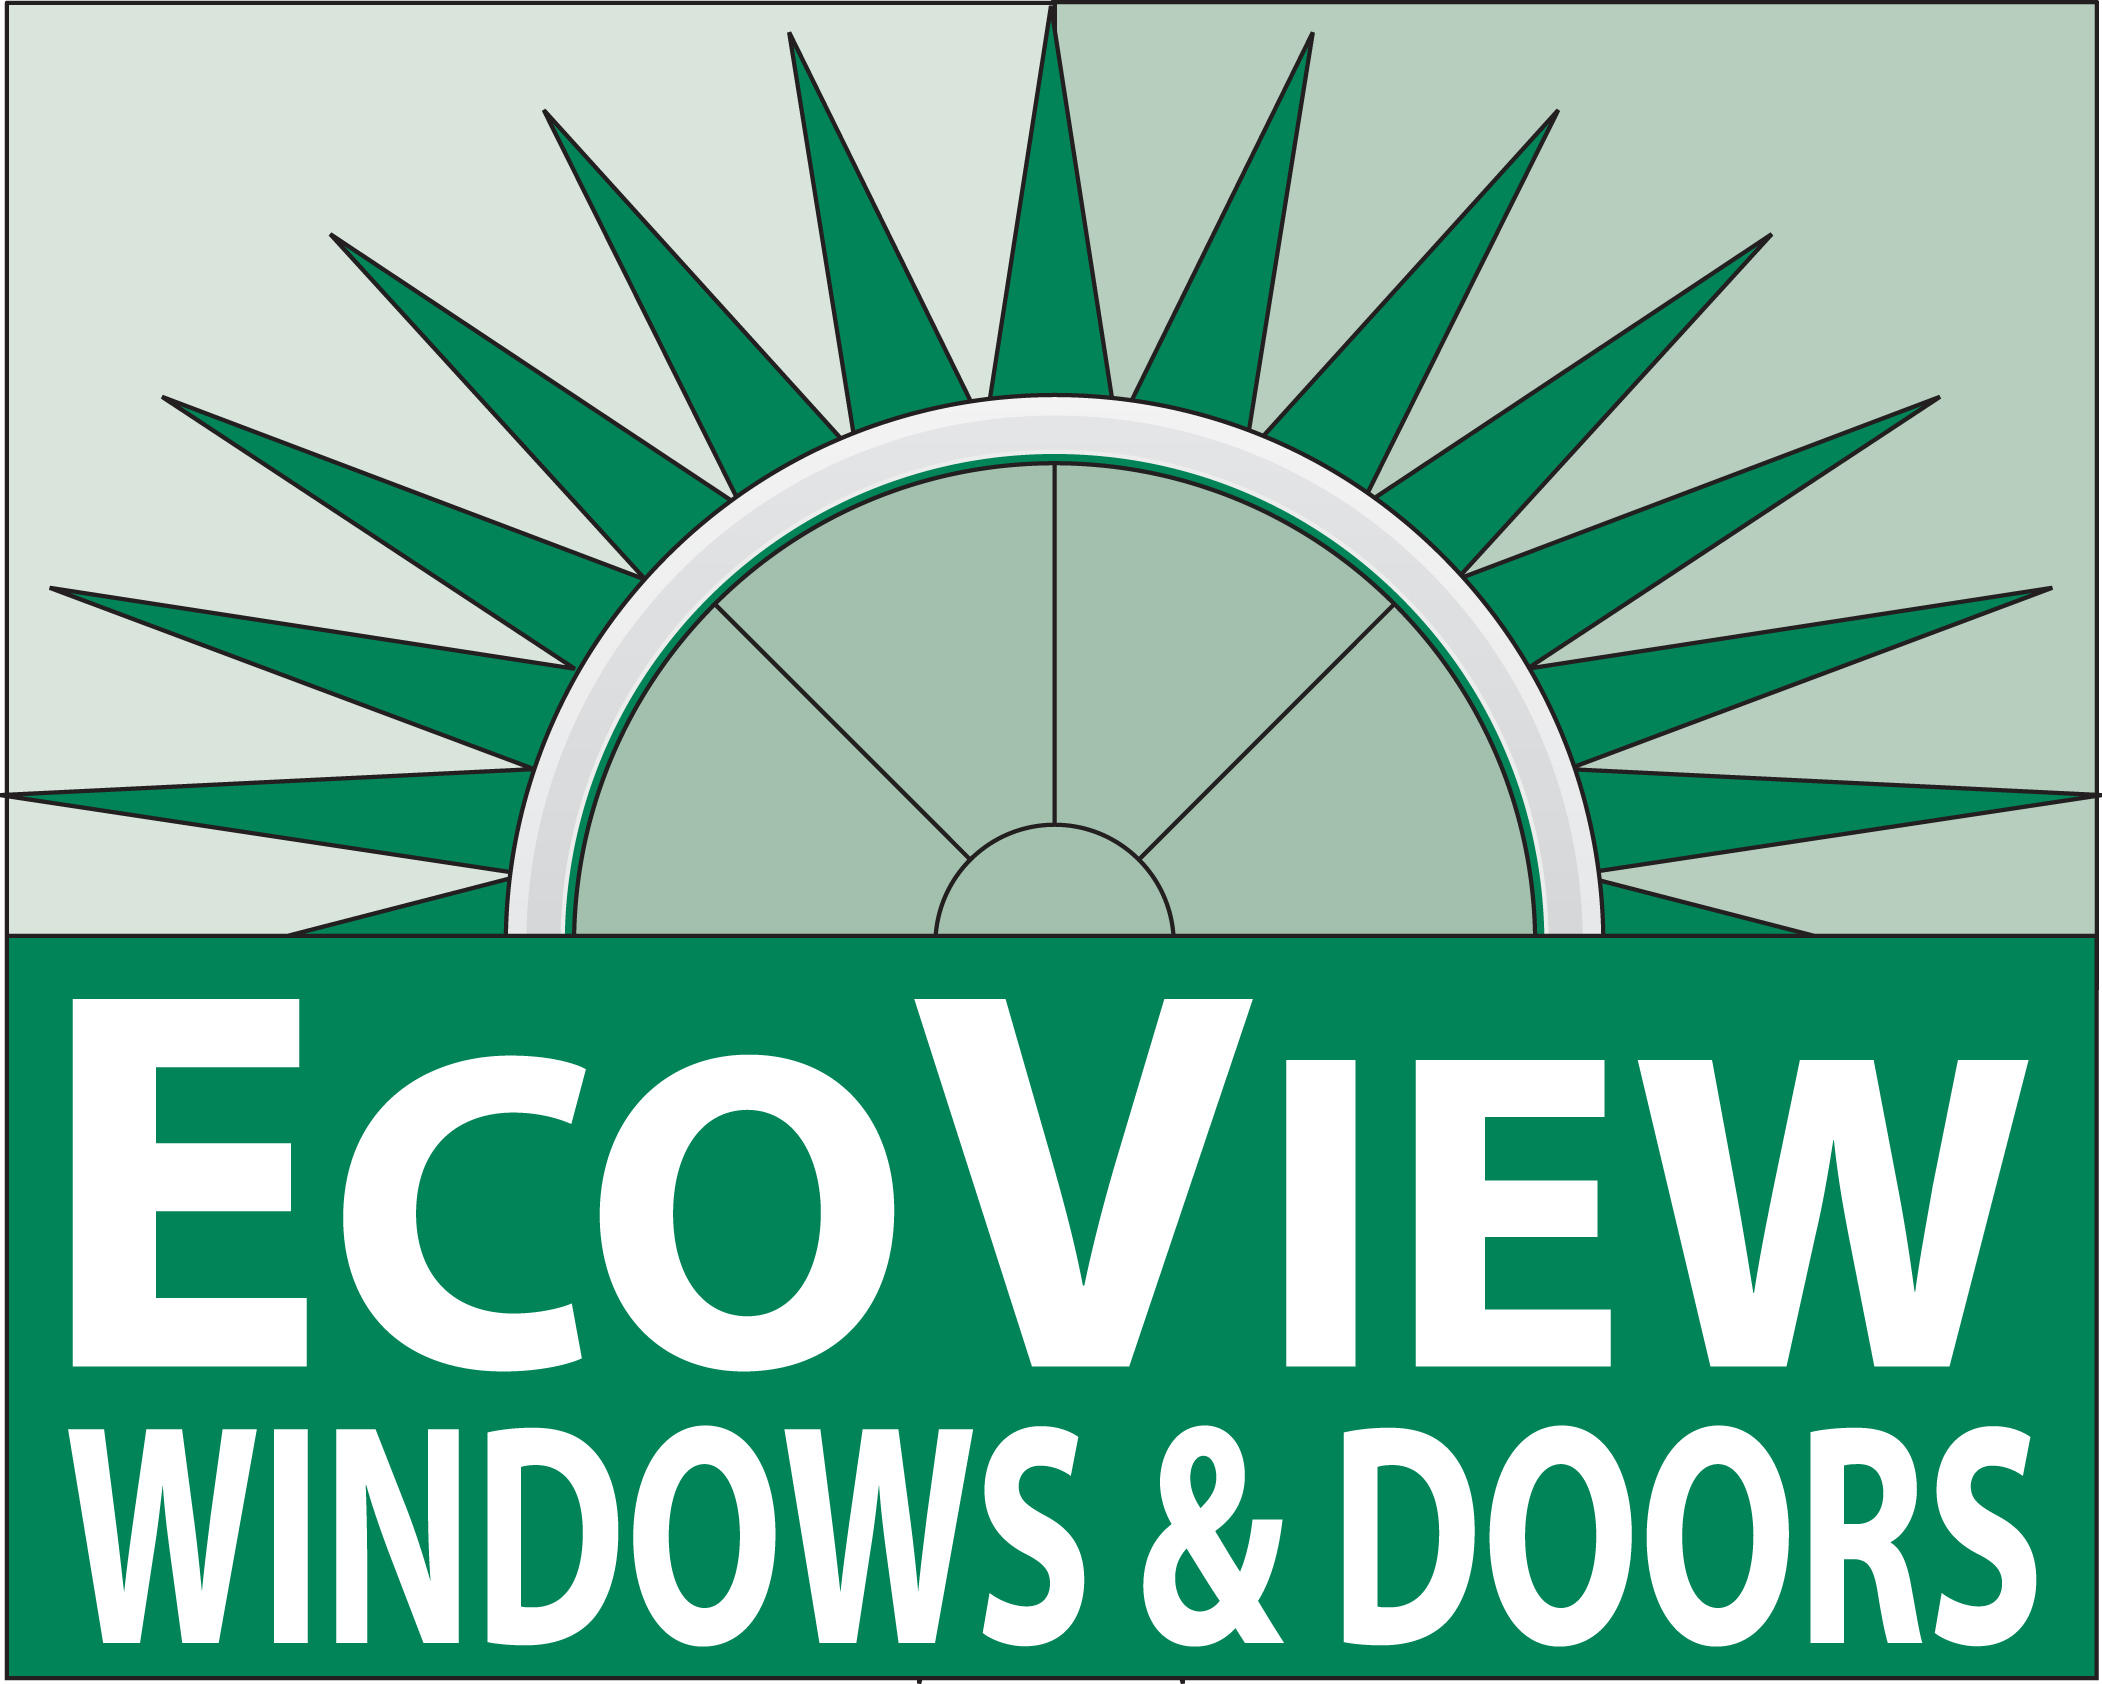 Ecoview windows doors coupons near me in sacramento for Windows and doors near me